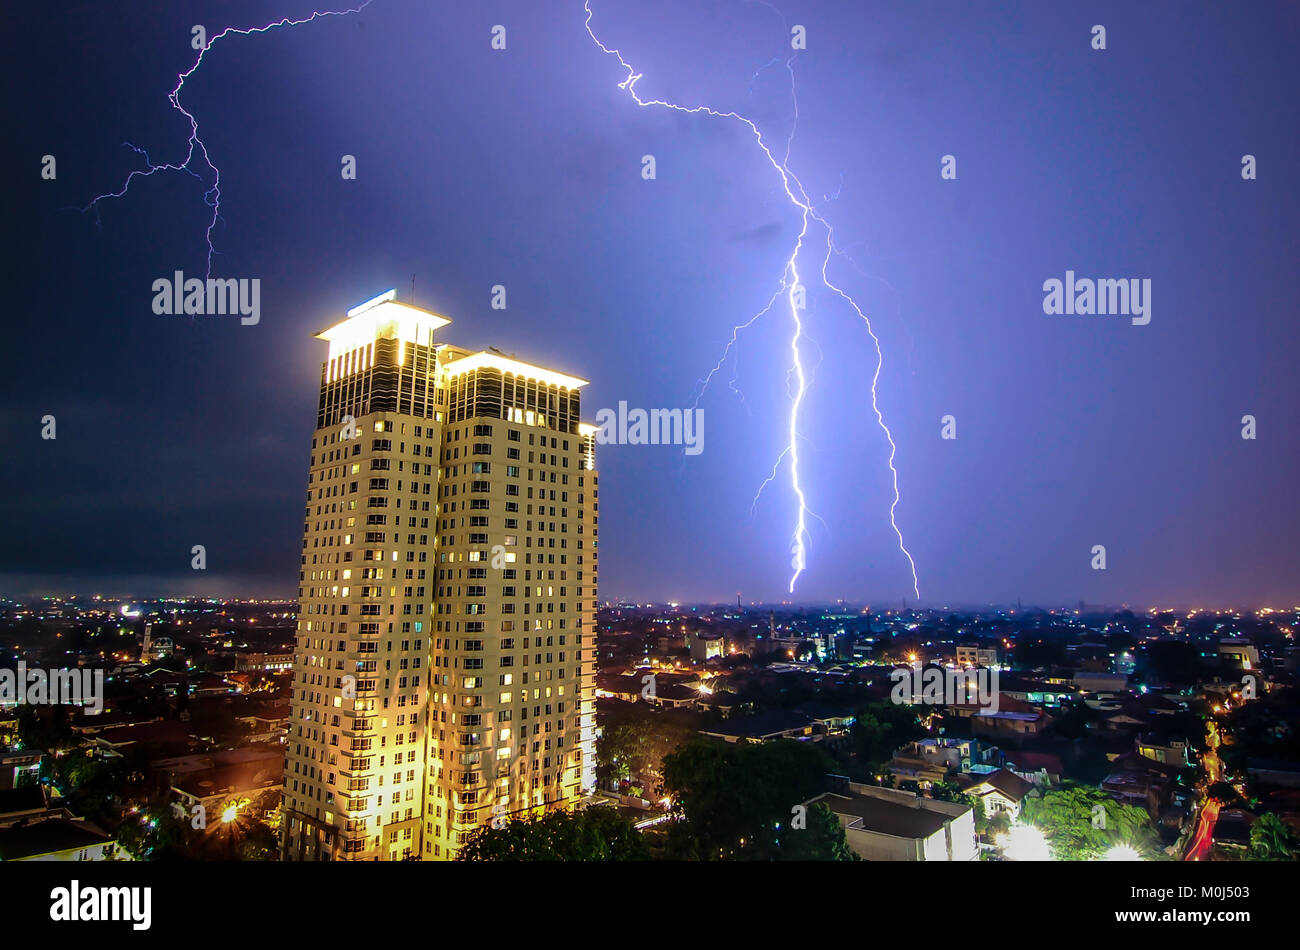 Lightning strike over a building in Jakarta, Indonesia Stock Photo